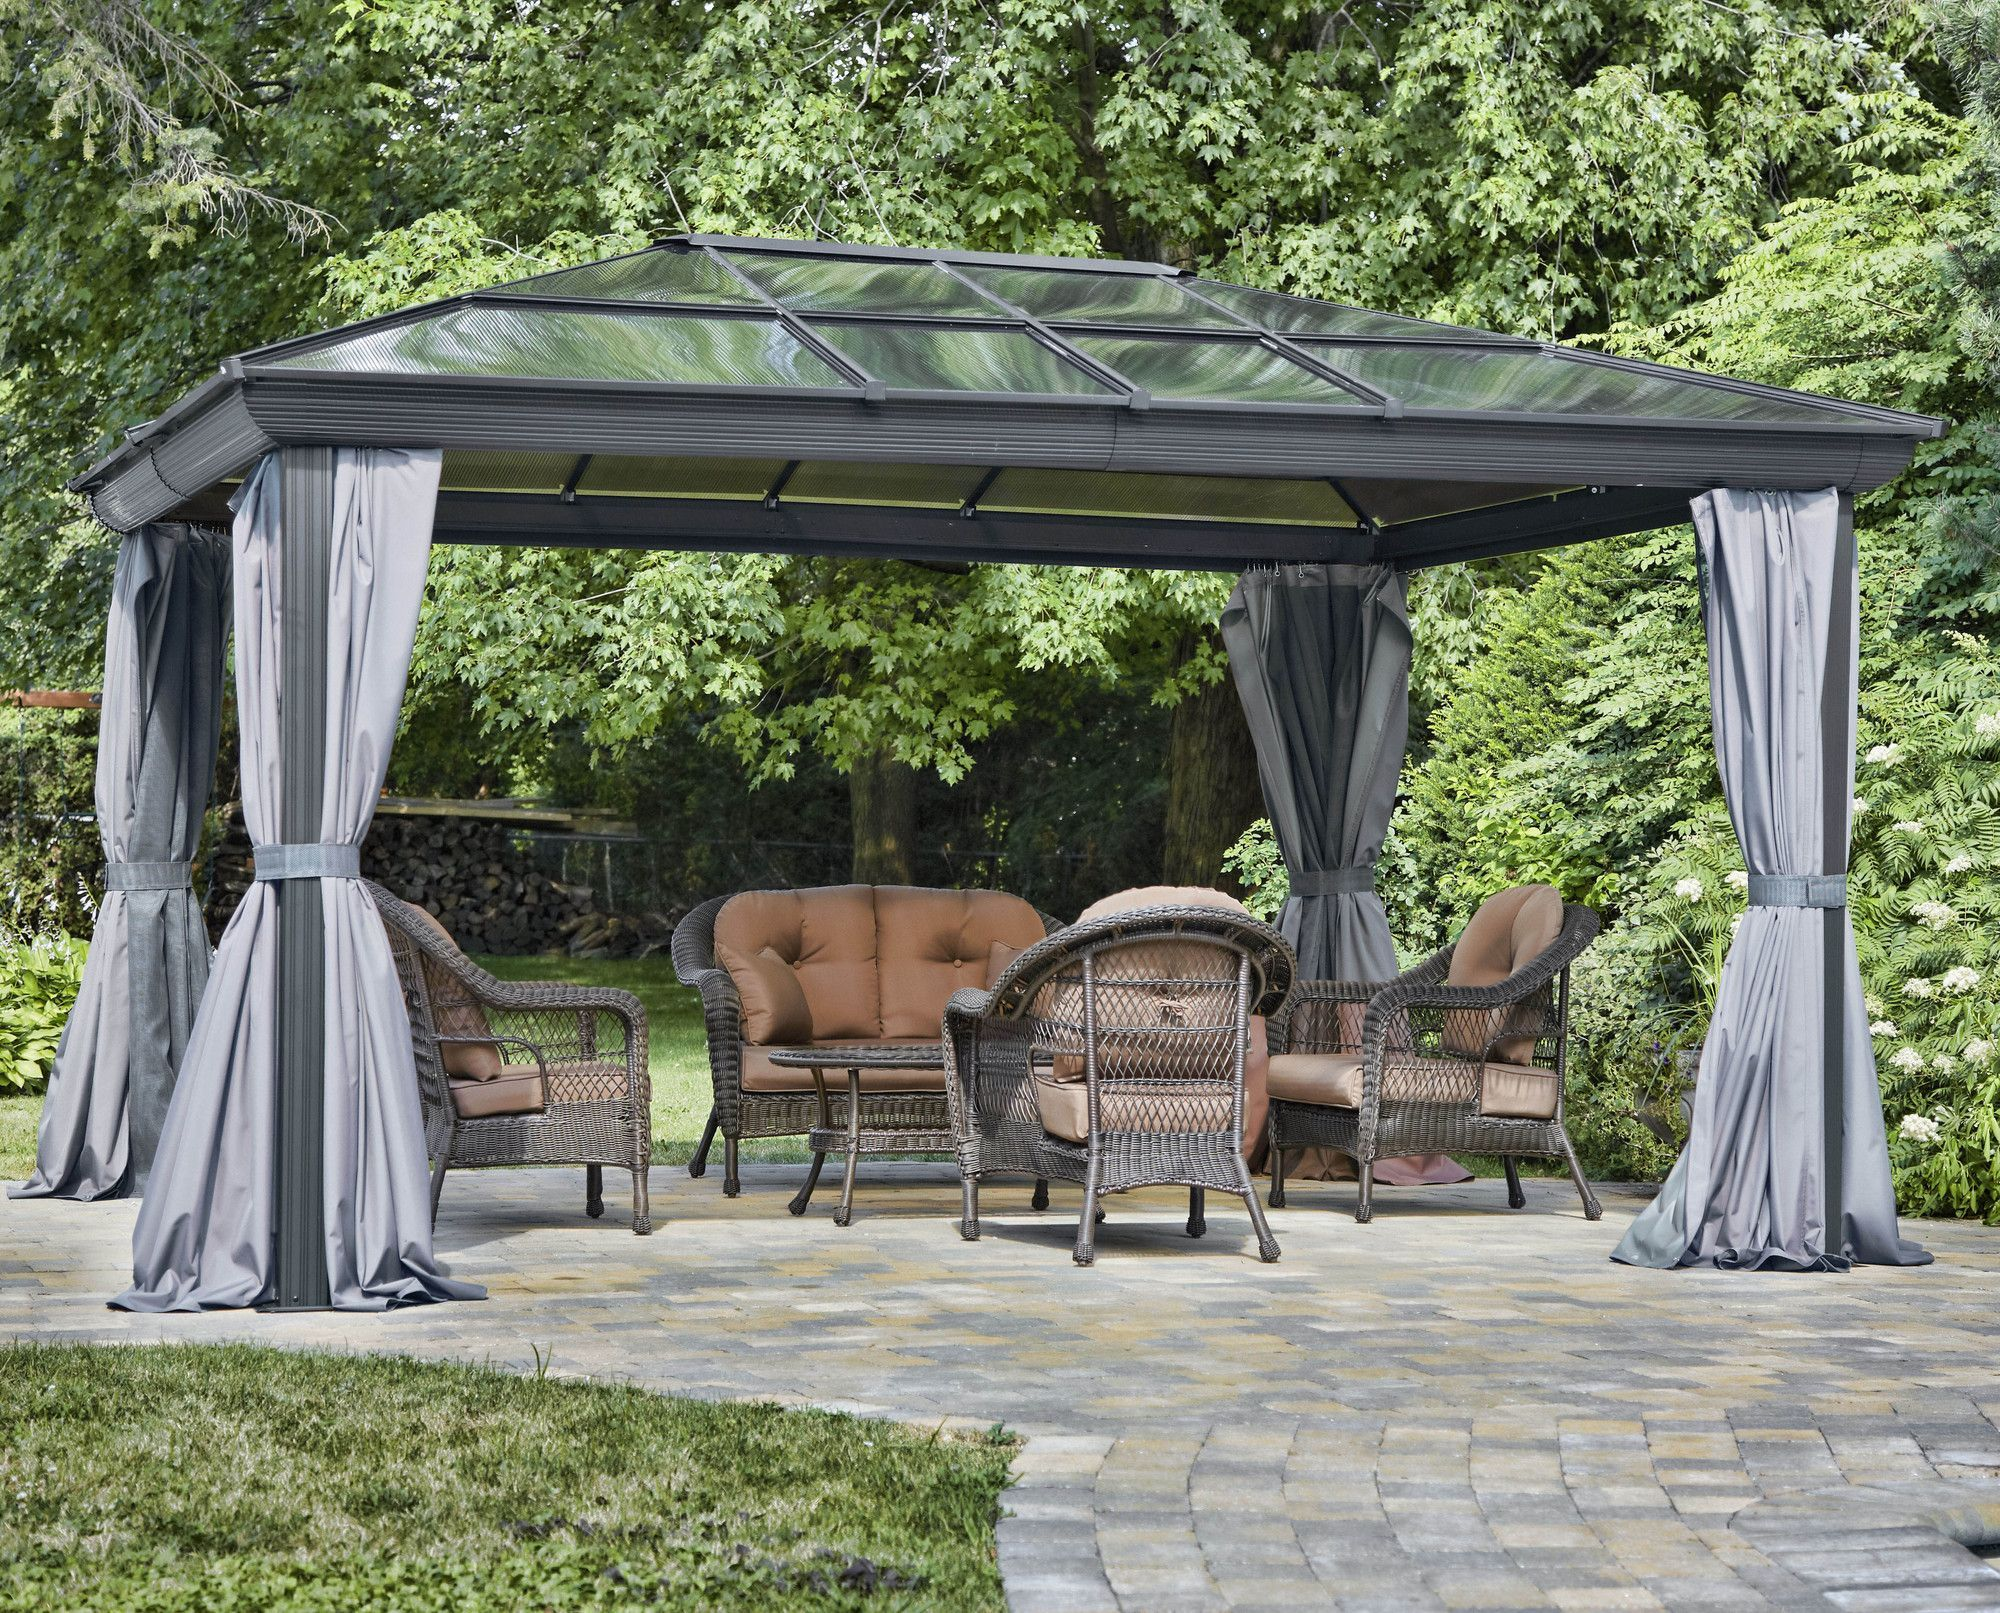 Four Season 12 Ft W X 16 Ft D Gazebo Canopy Outdoor All Seasons Gazebo Hardtop Gazebo